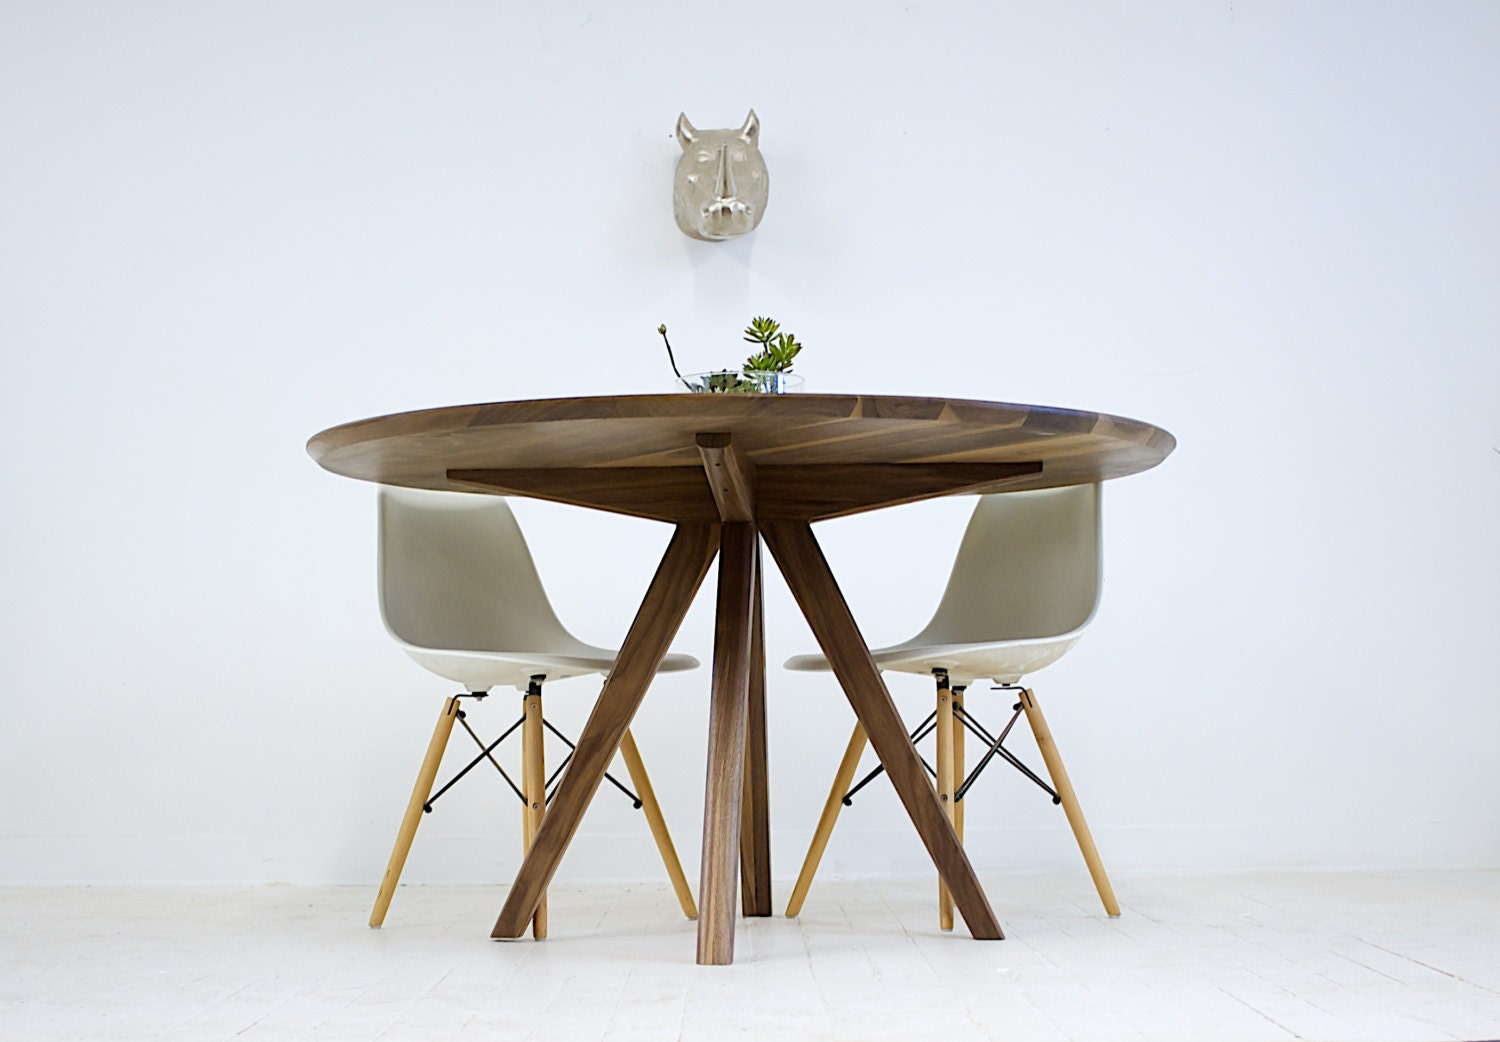 dining table round dining table modern dining table walnut. Black Bedroom Furniture Sets. Home Design Ideas